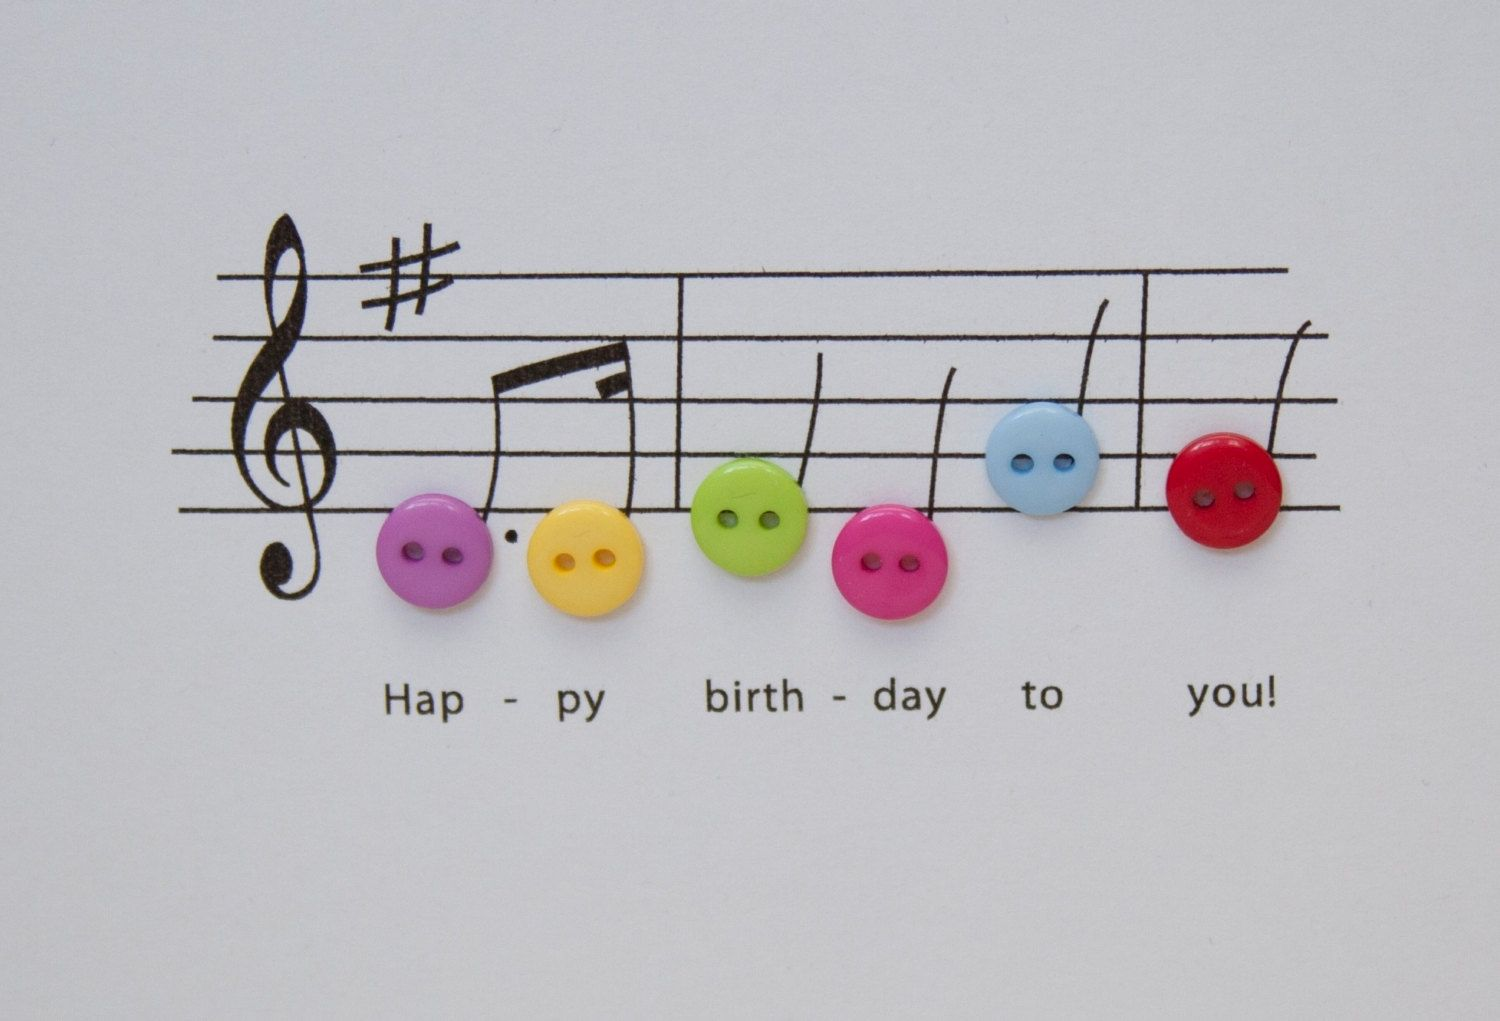 Happy birthday music card birthday card with button notes paper happy birthday music card birthday card with button notes paper handmade greeting card etsy uk kristyandbryce Choice Image